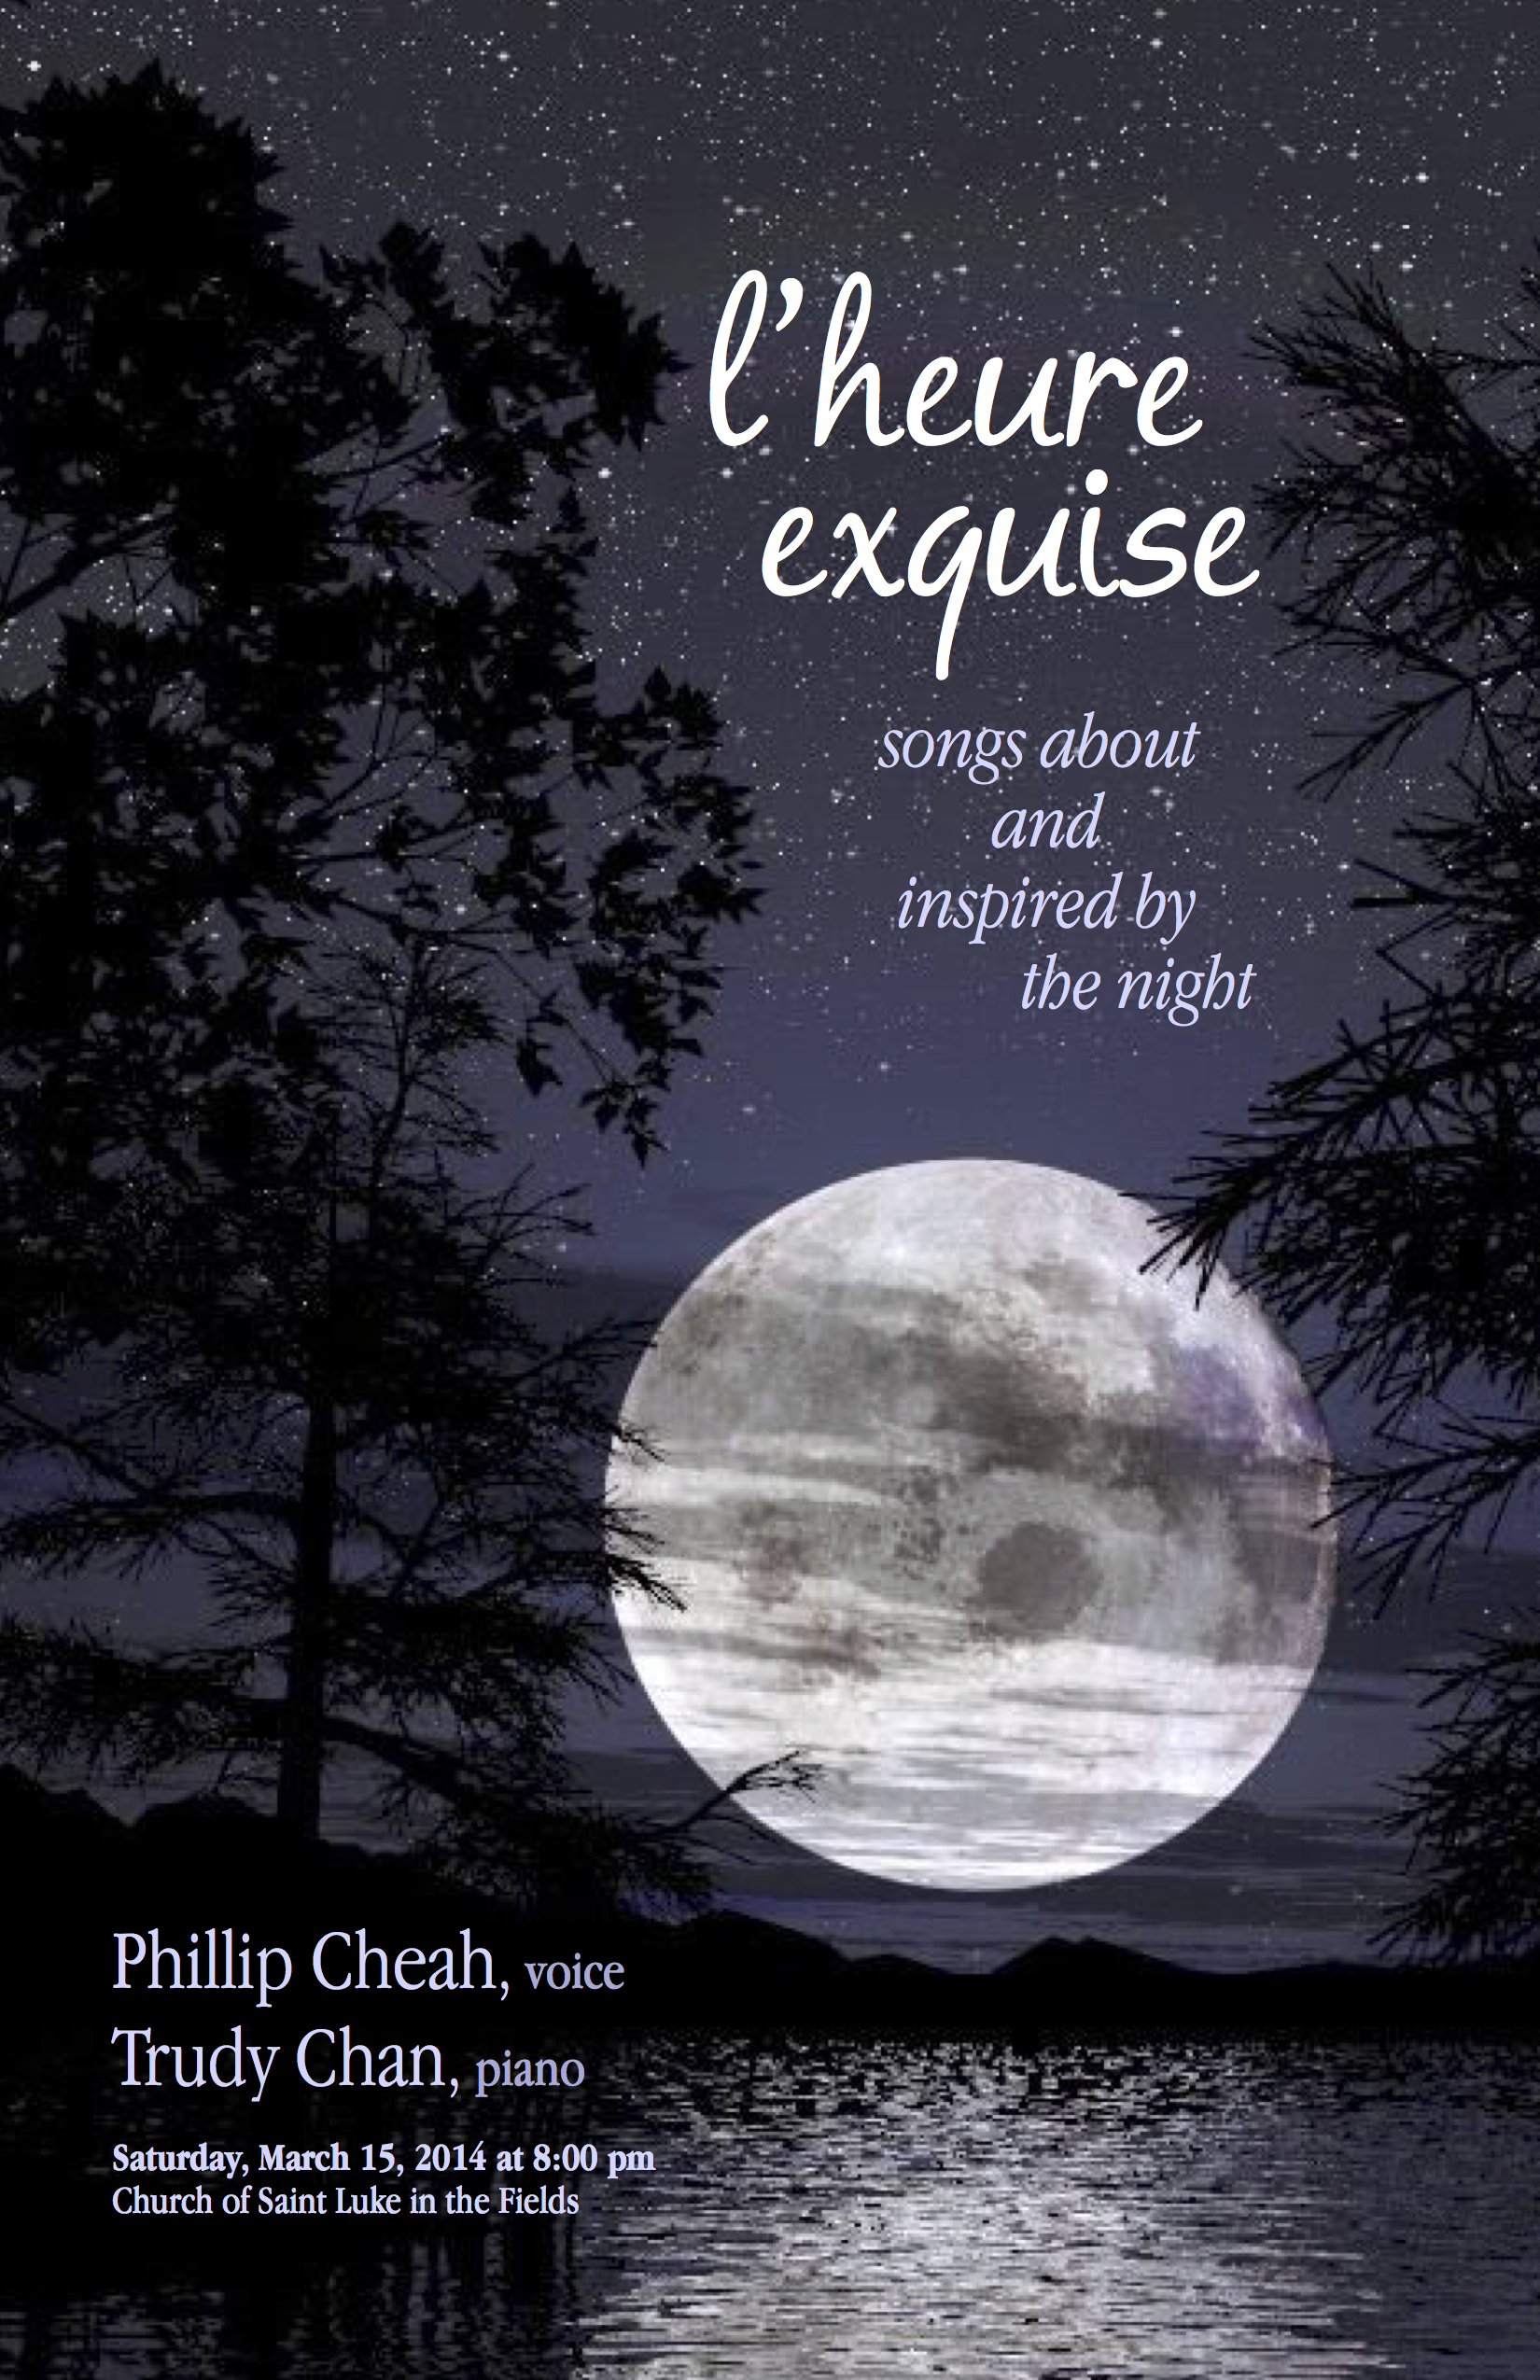 L'heure exquise Programme Cover.jpg